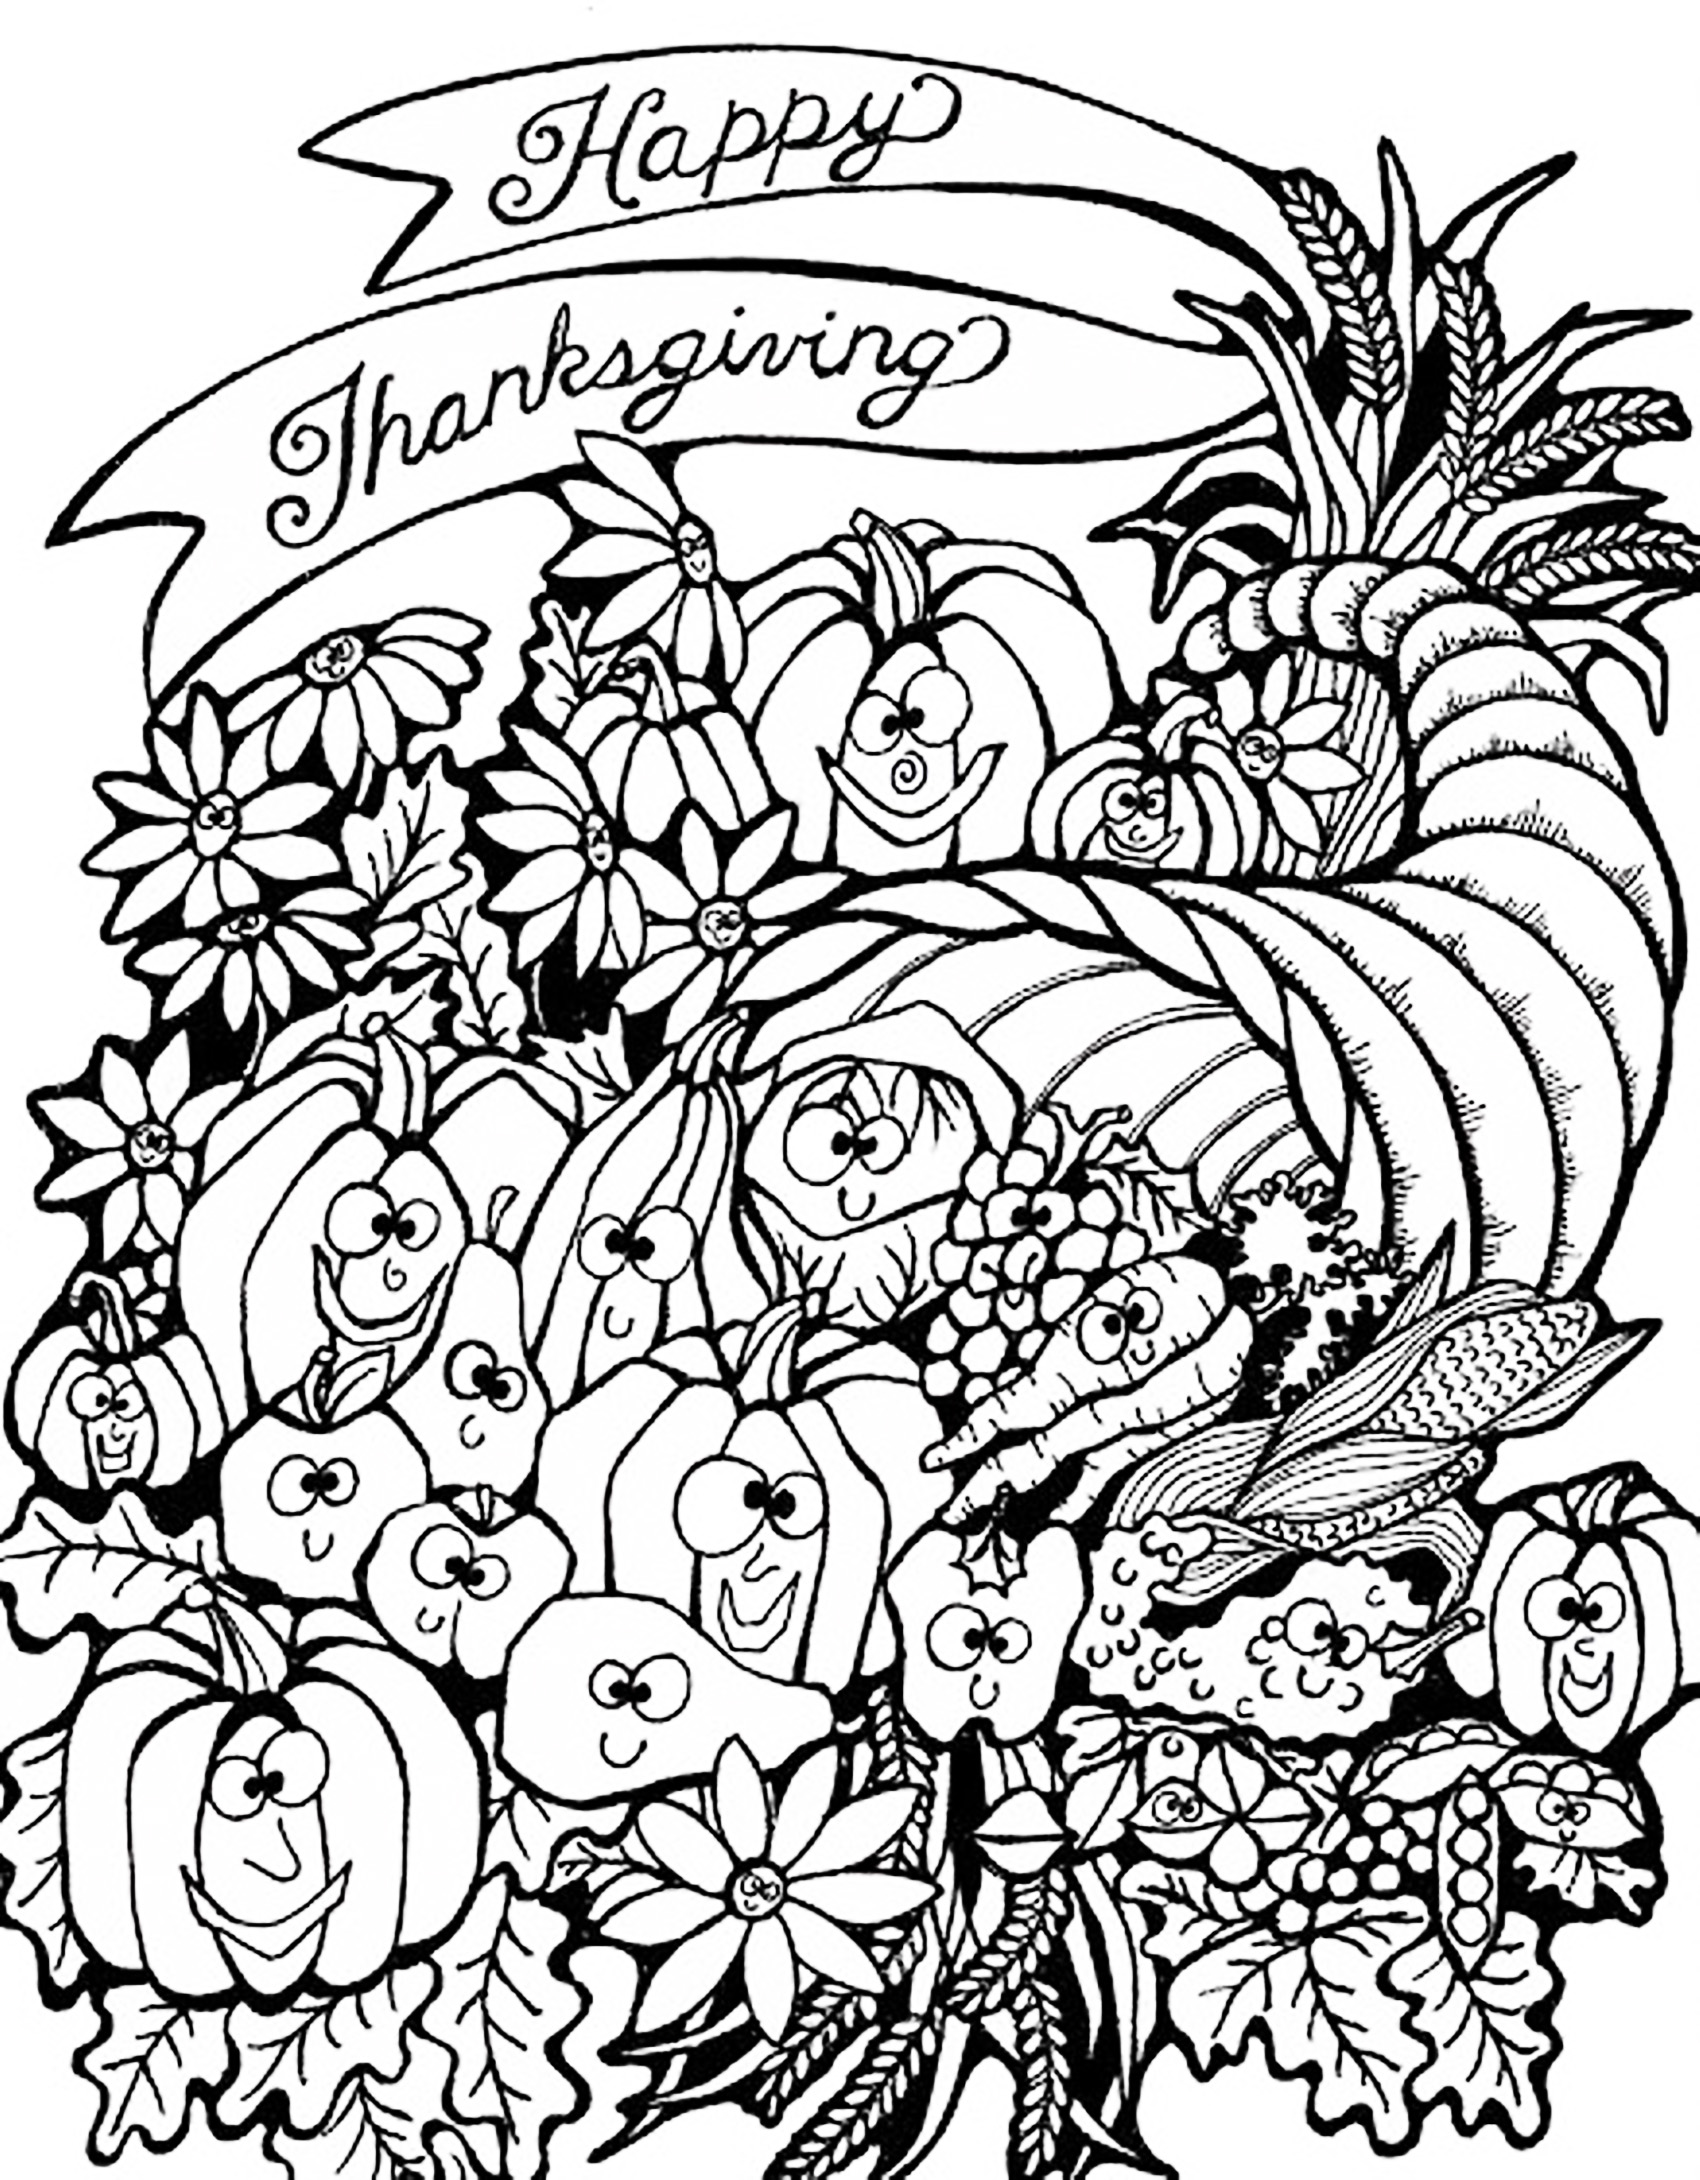 Thanksgiving 78333 Thanksgiving Colorear Para Adultos